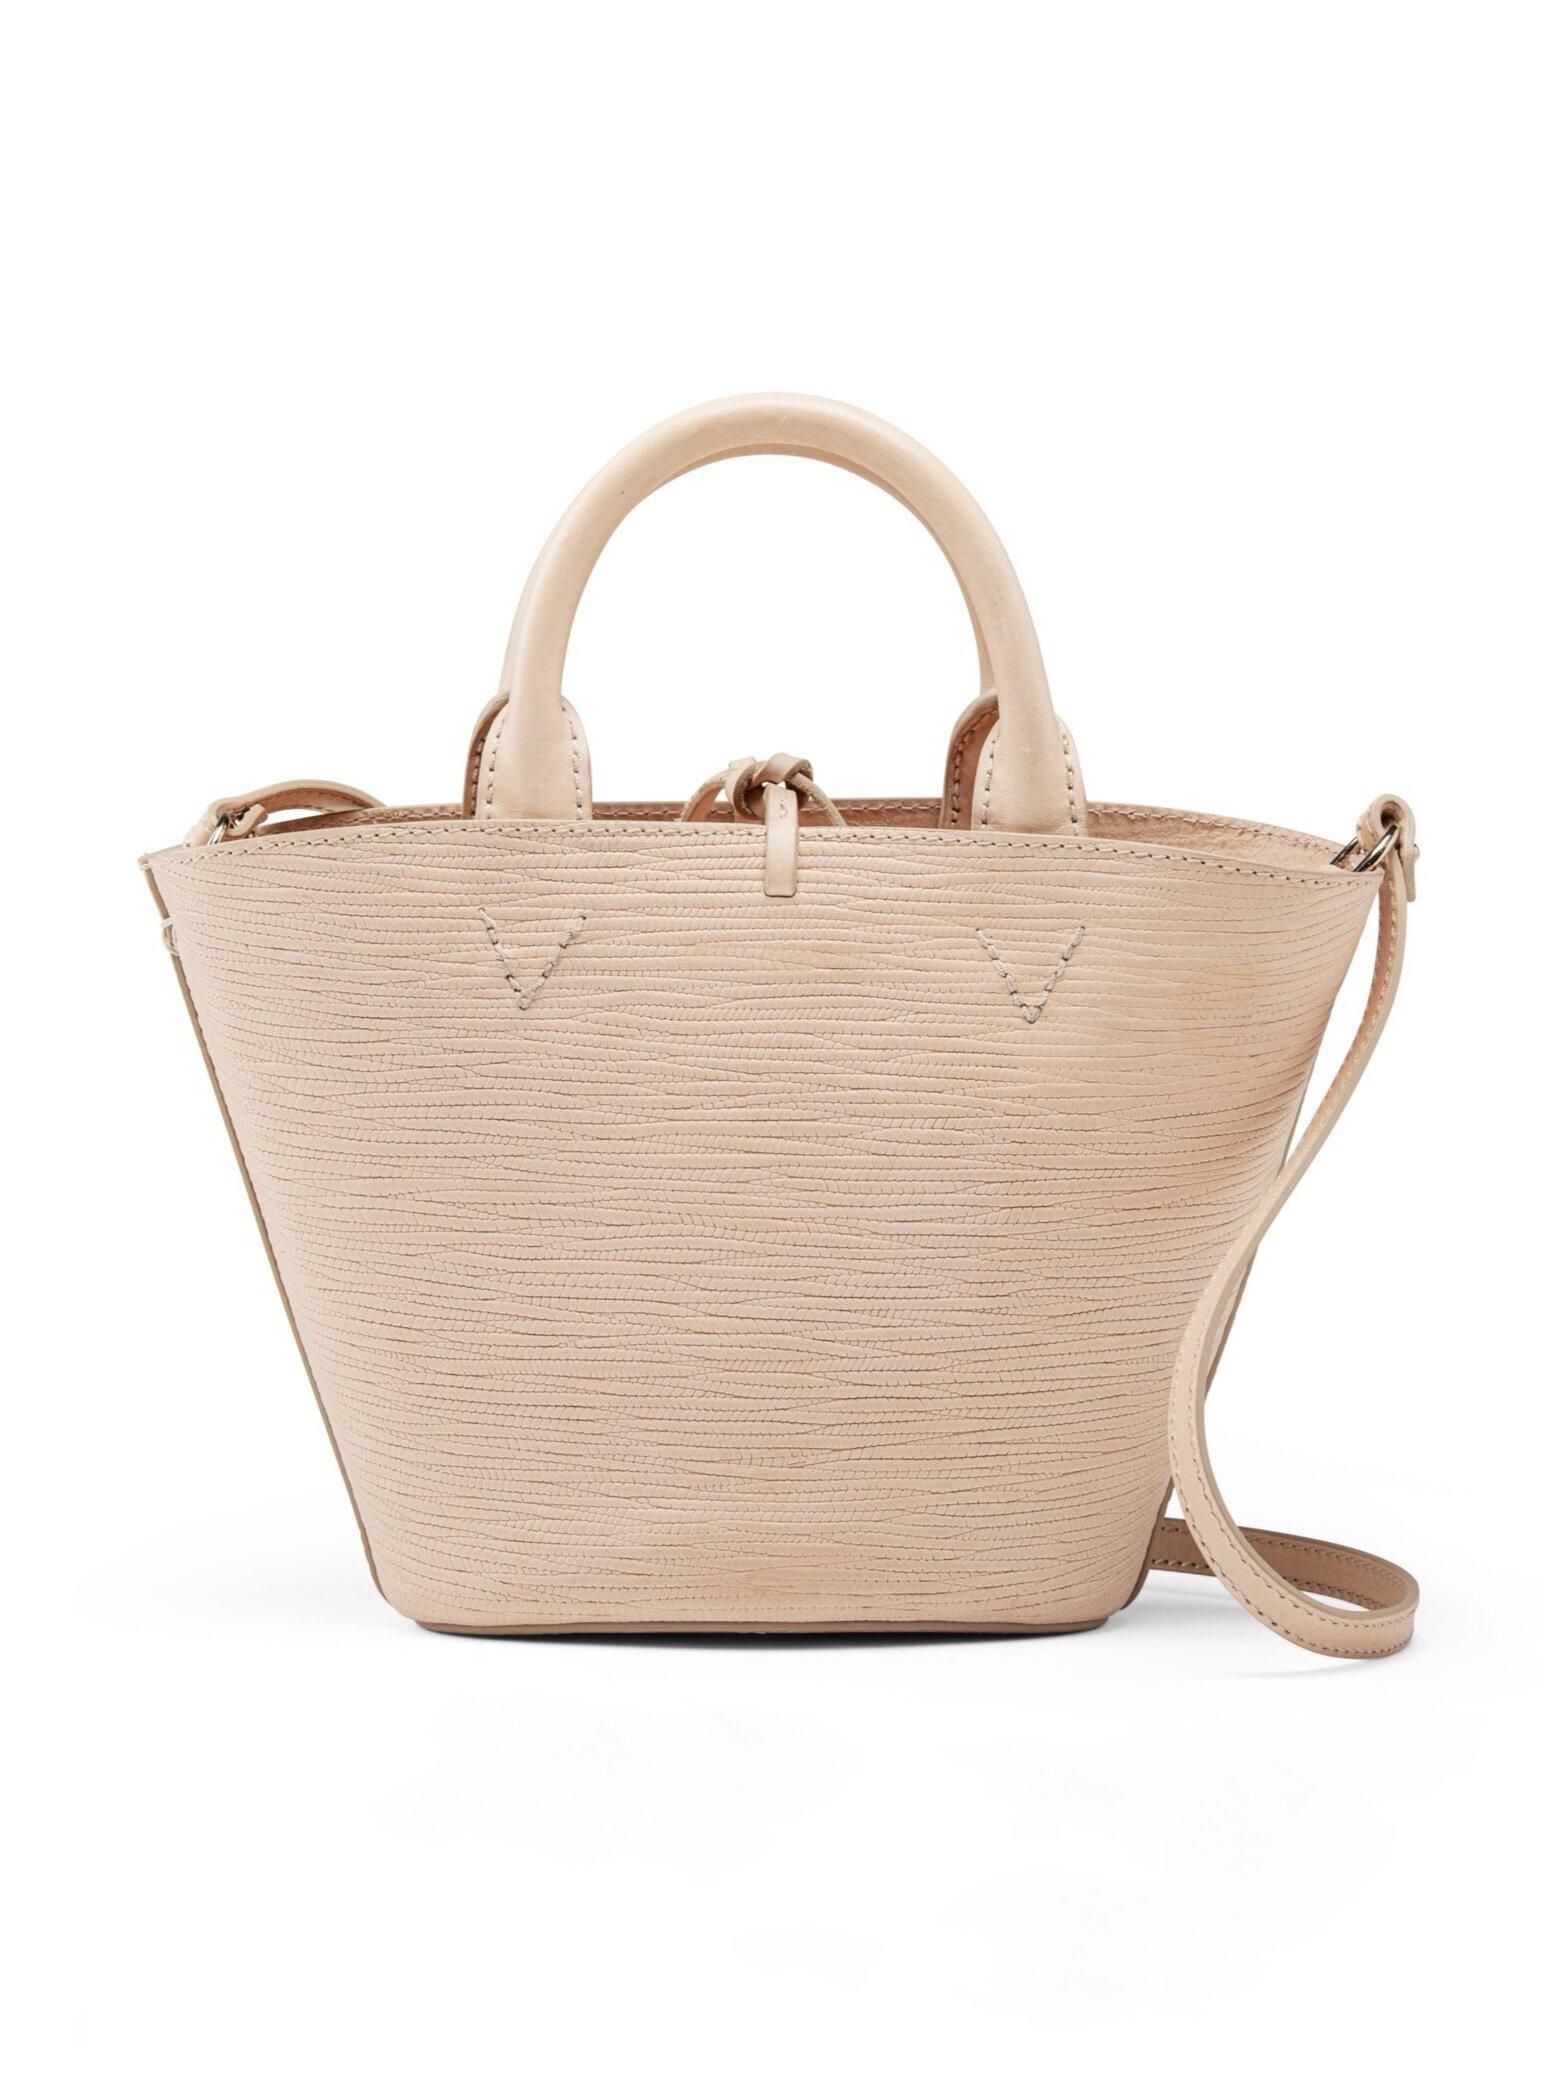 Small Cesta -  Natural Leather